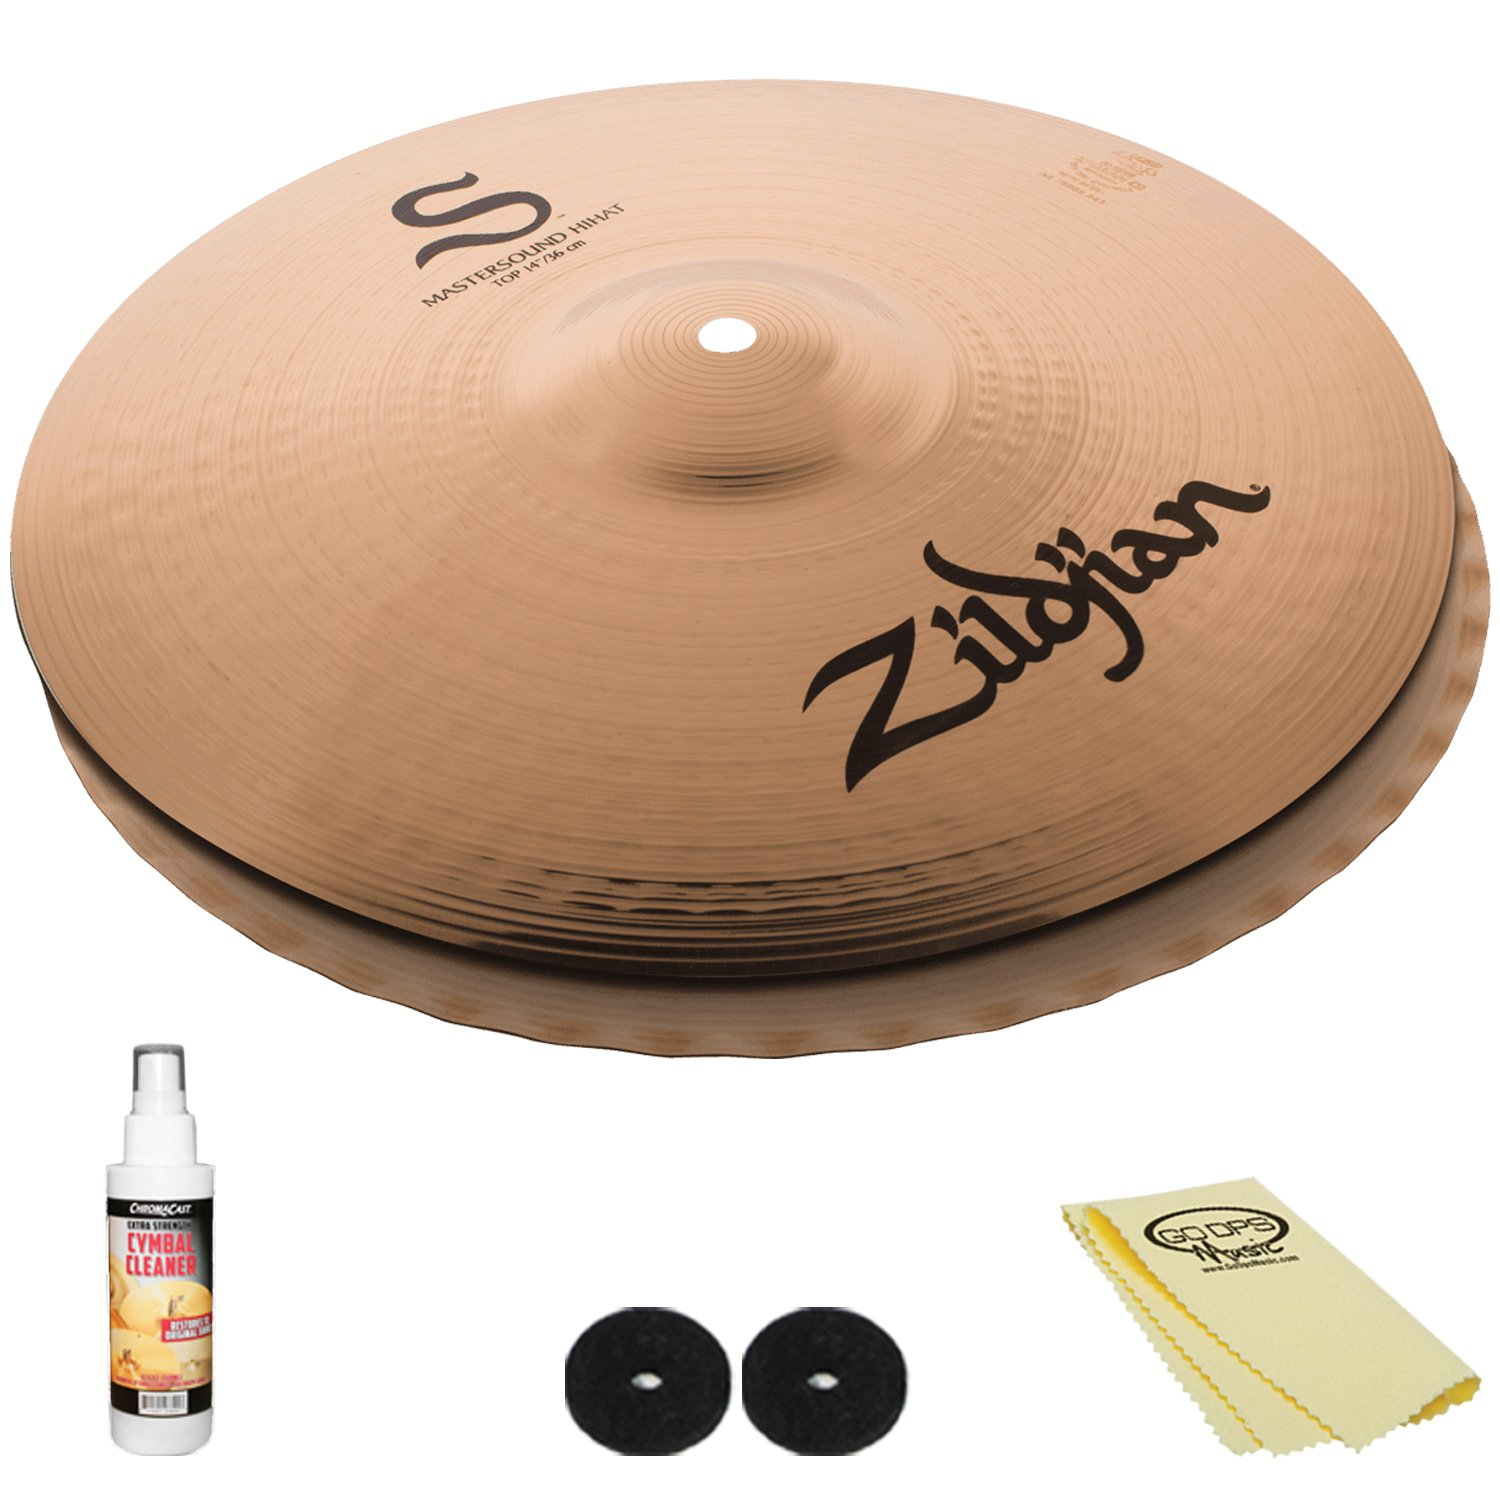 9db7cc931ea Get Quotations · Zildjian S Series 14